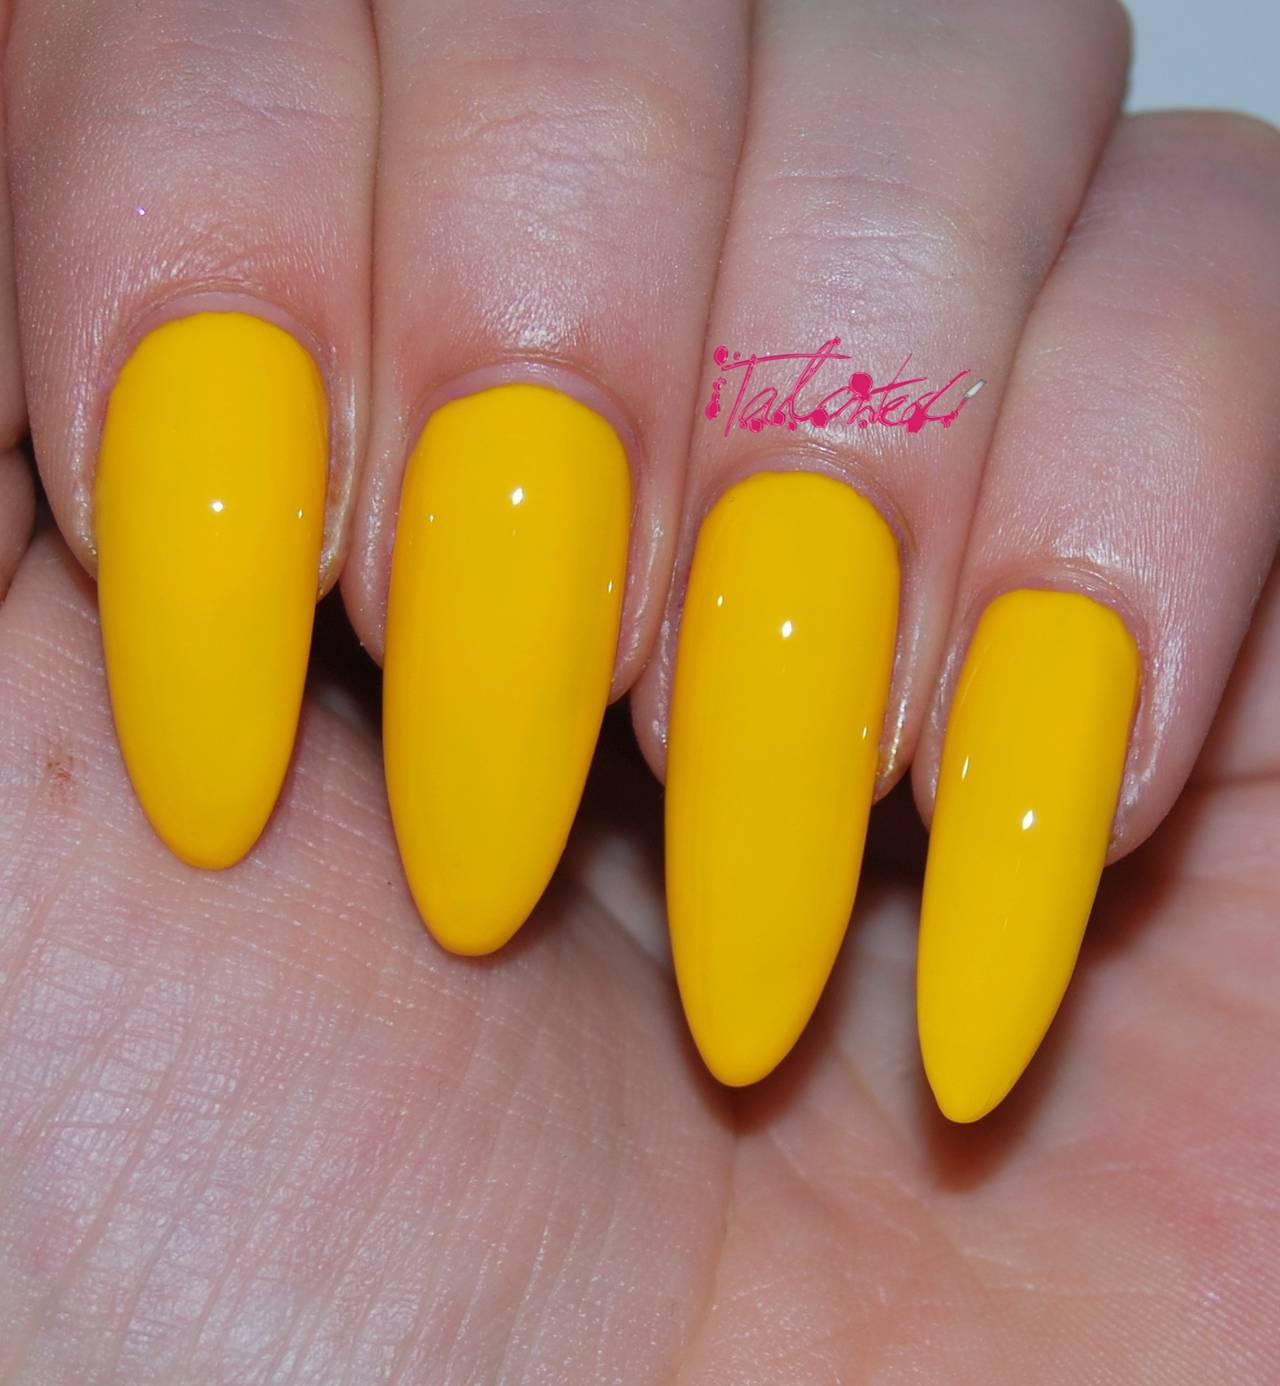 Kiko 279 Yellow nail varnish review